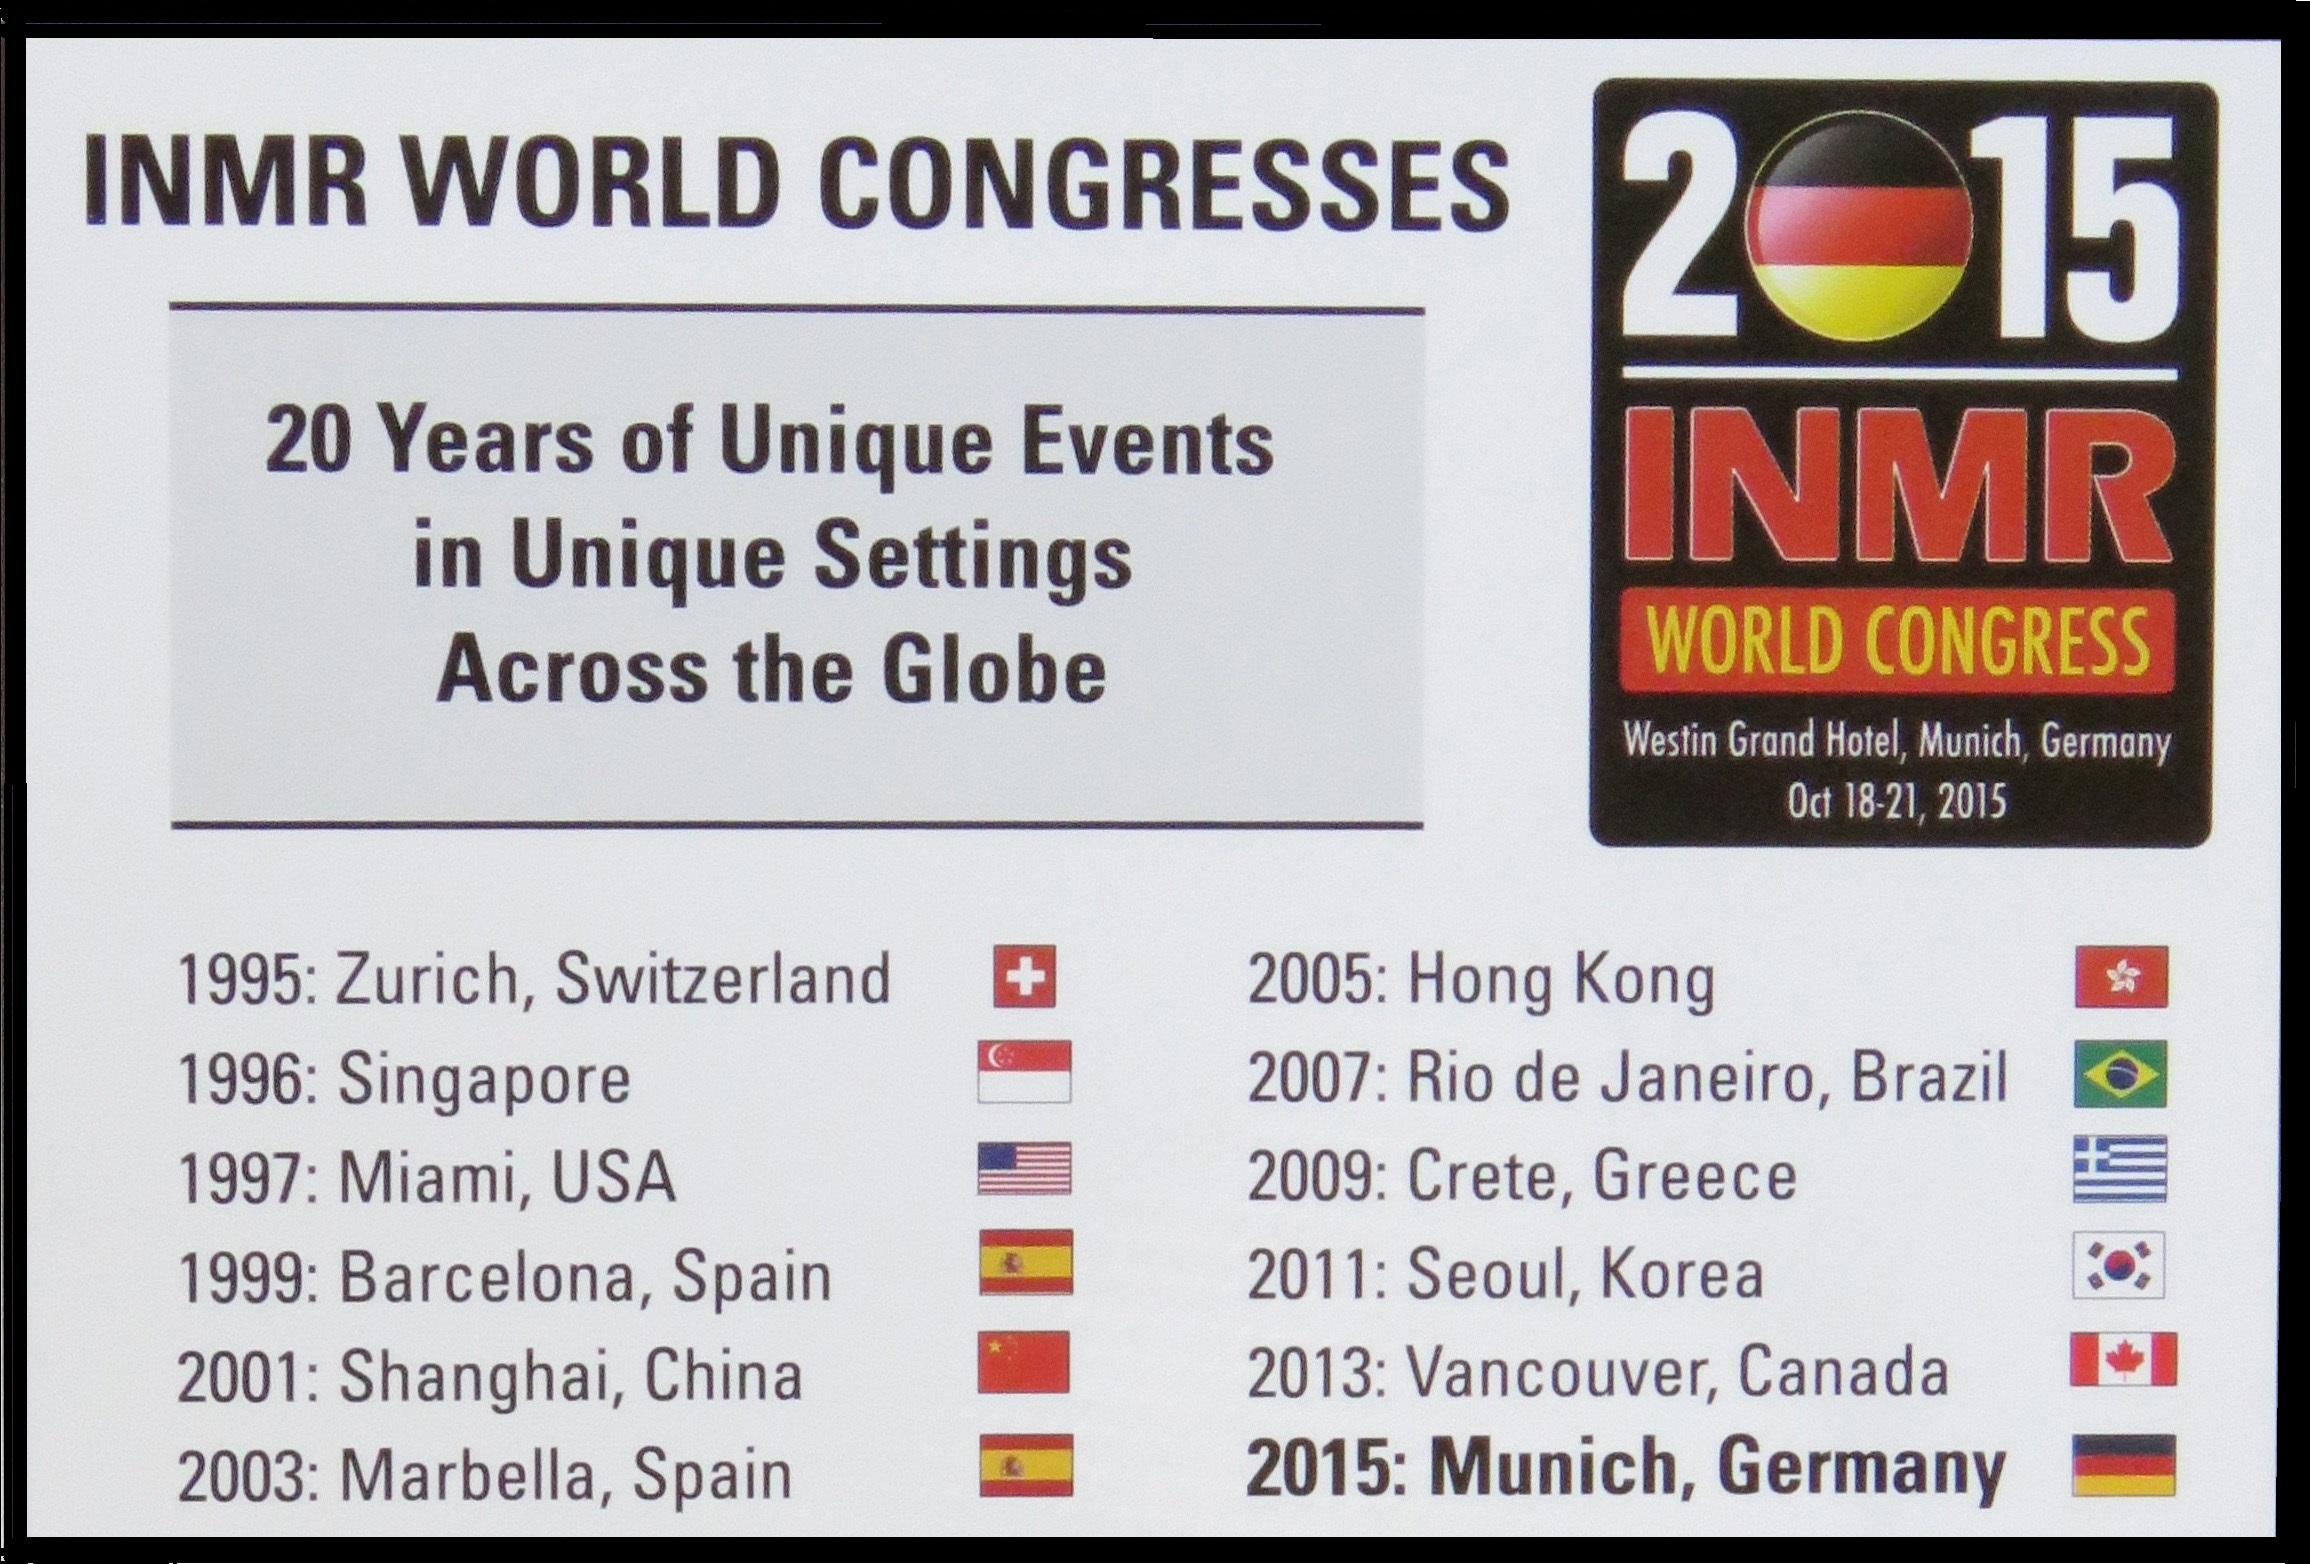 INMRWorldCongress2015